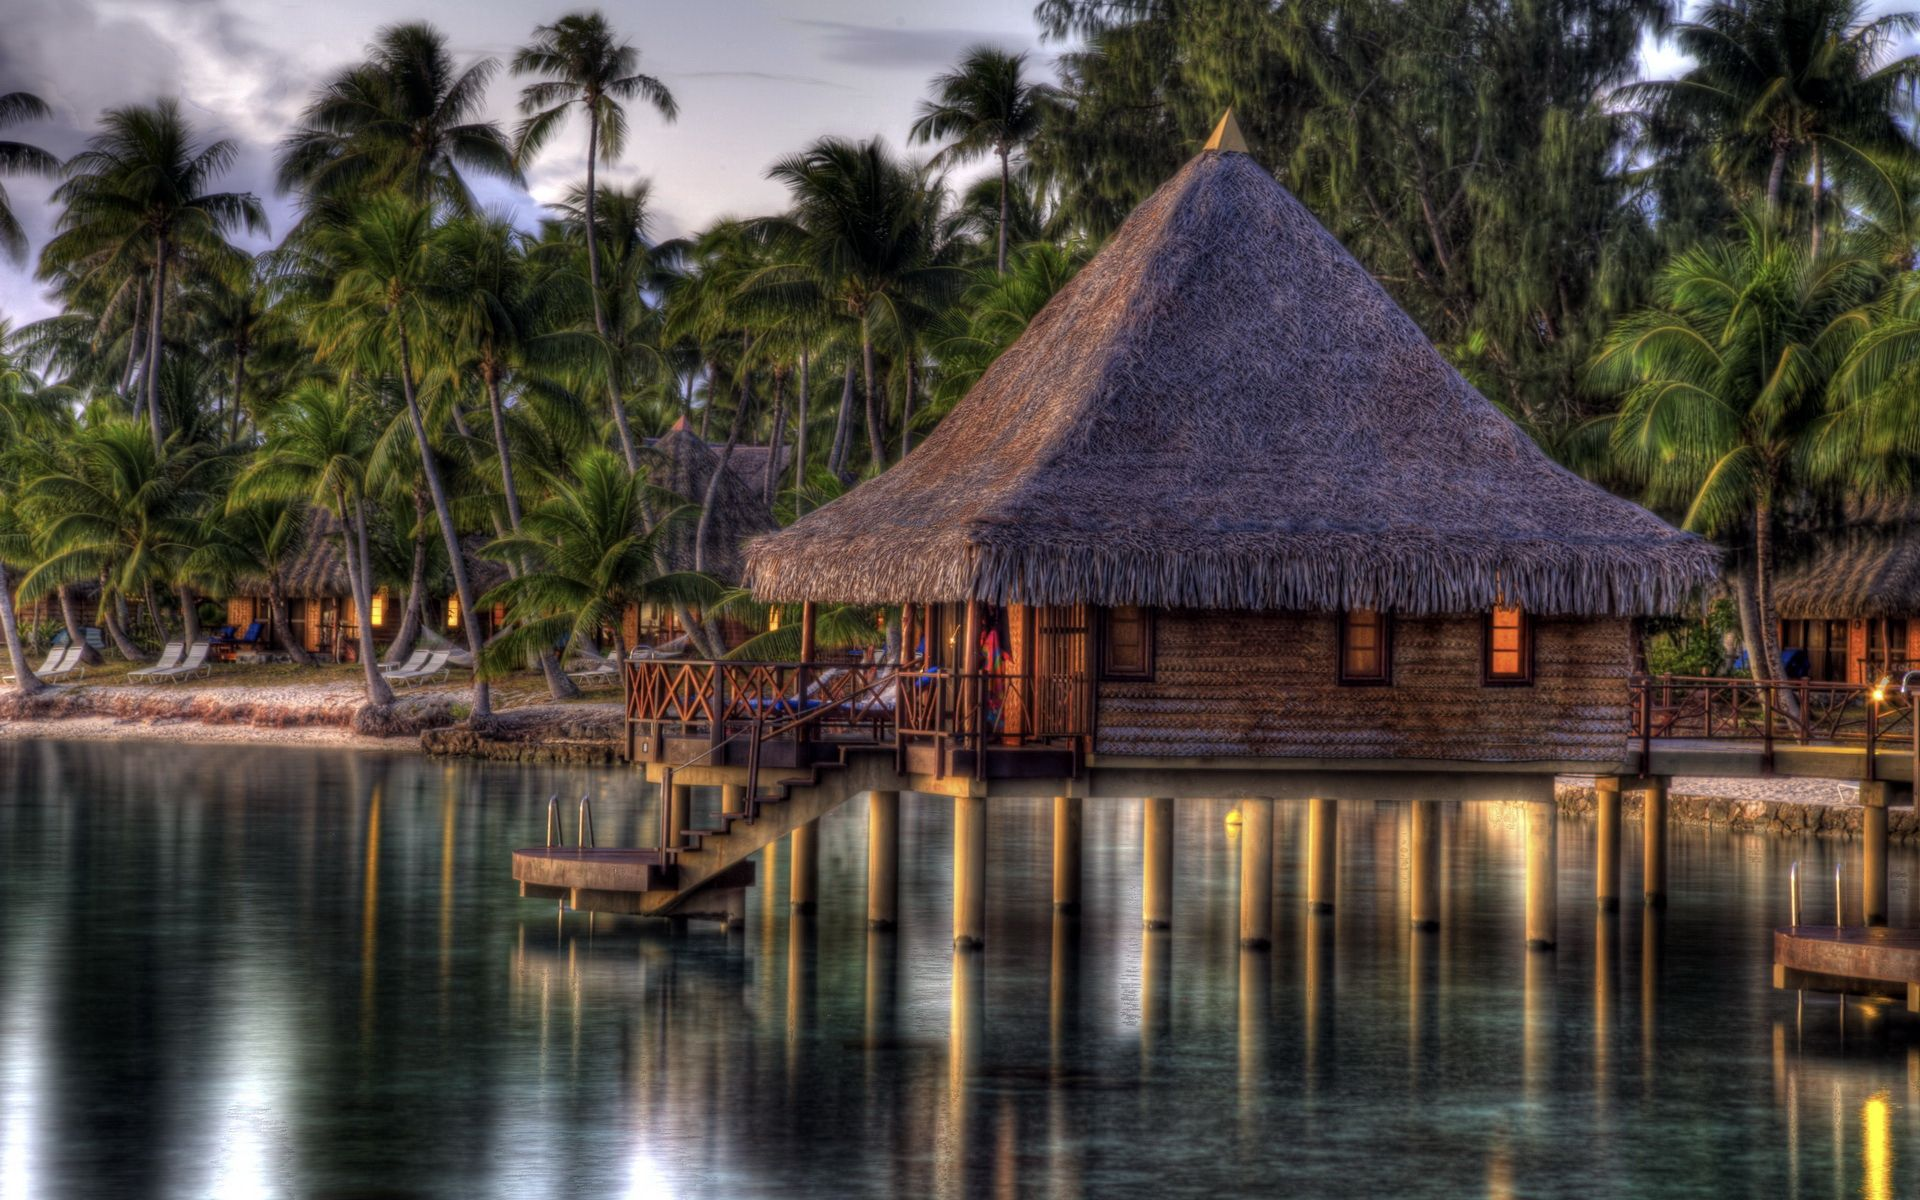 150417 download wallpaper Nature, Hut, Small House, Lodge, Tropics, Water, Shore, Bank, Blur, Smooth, Palms screensavers and pictures for free